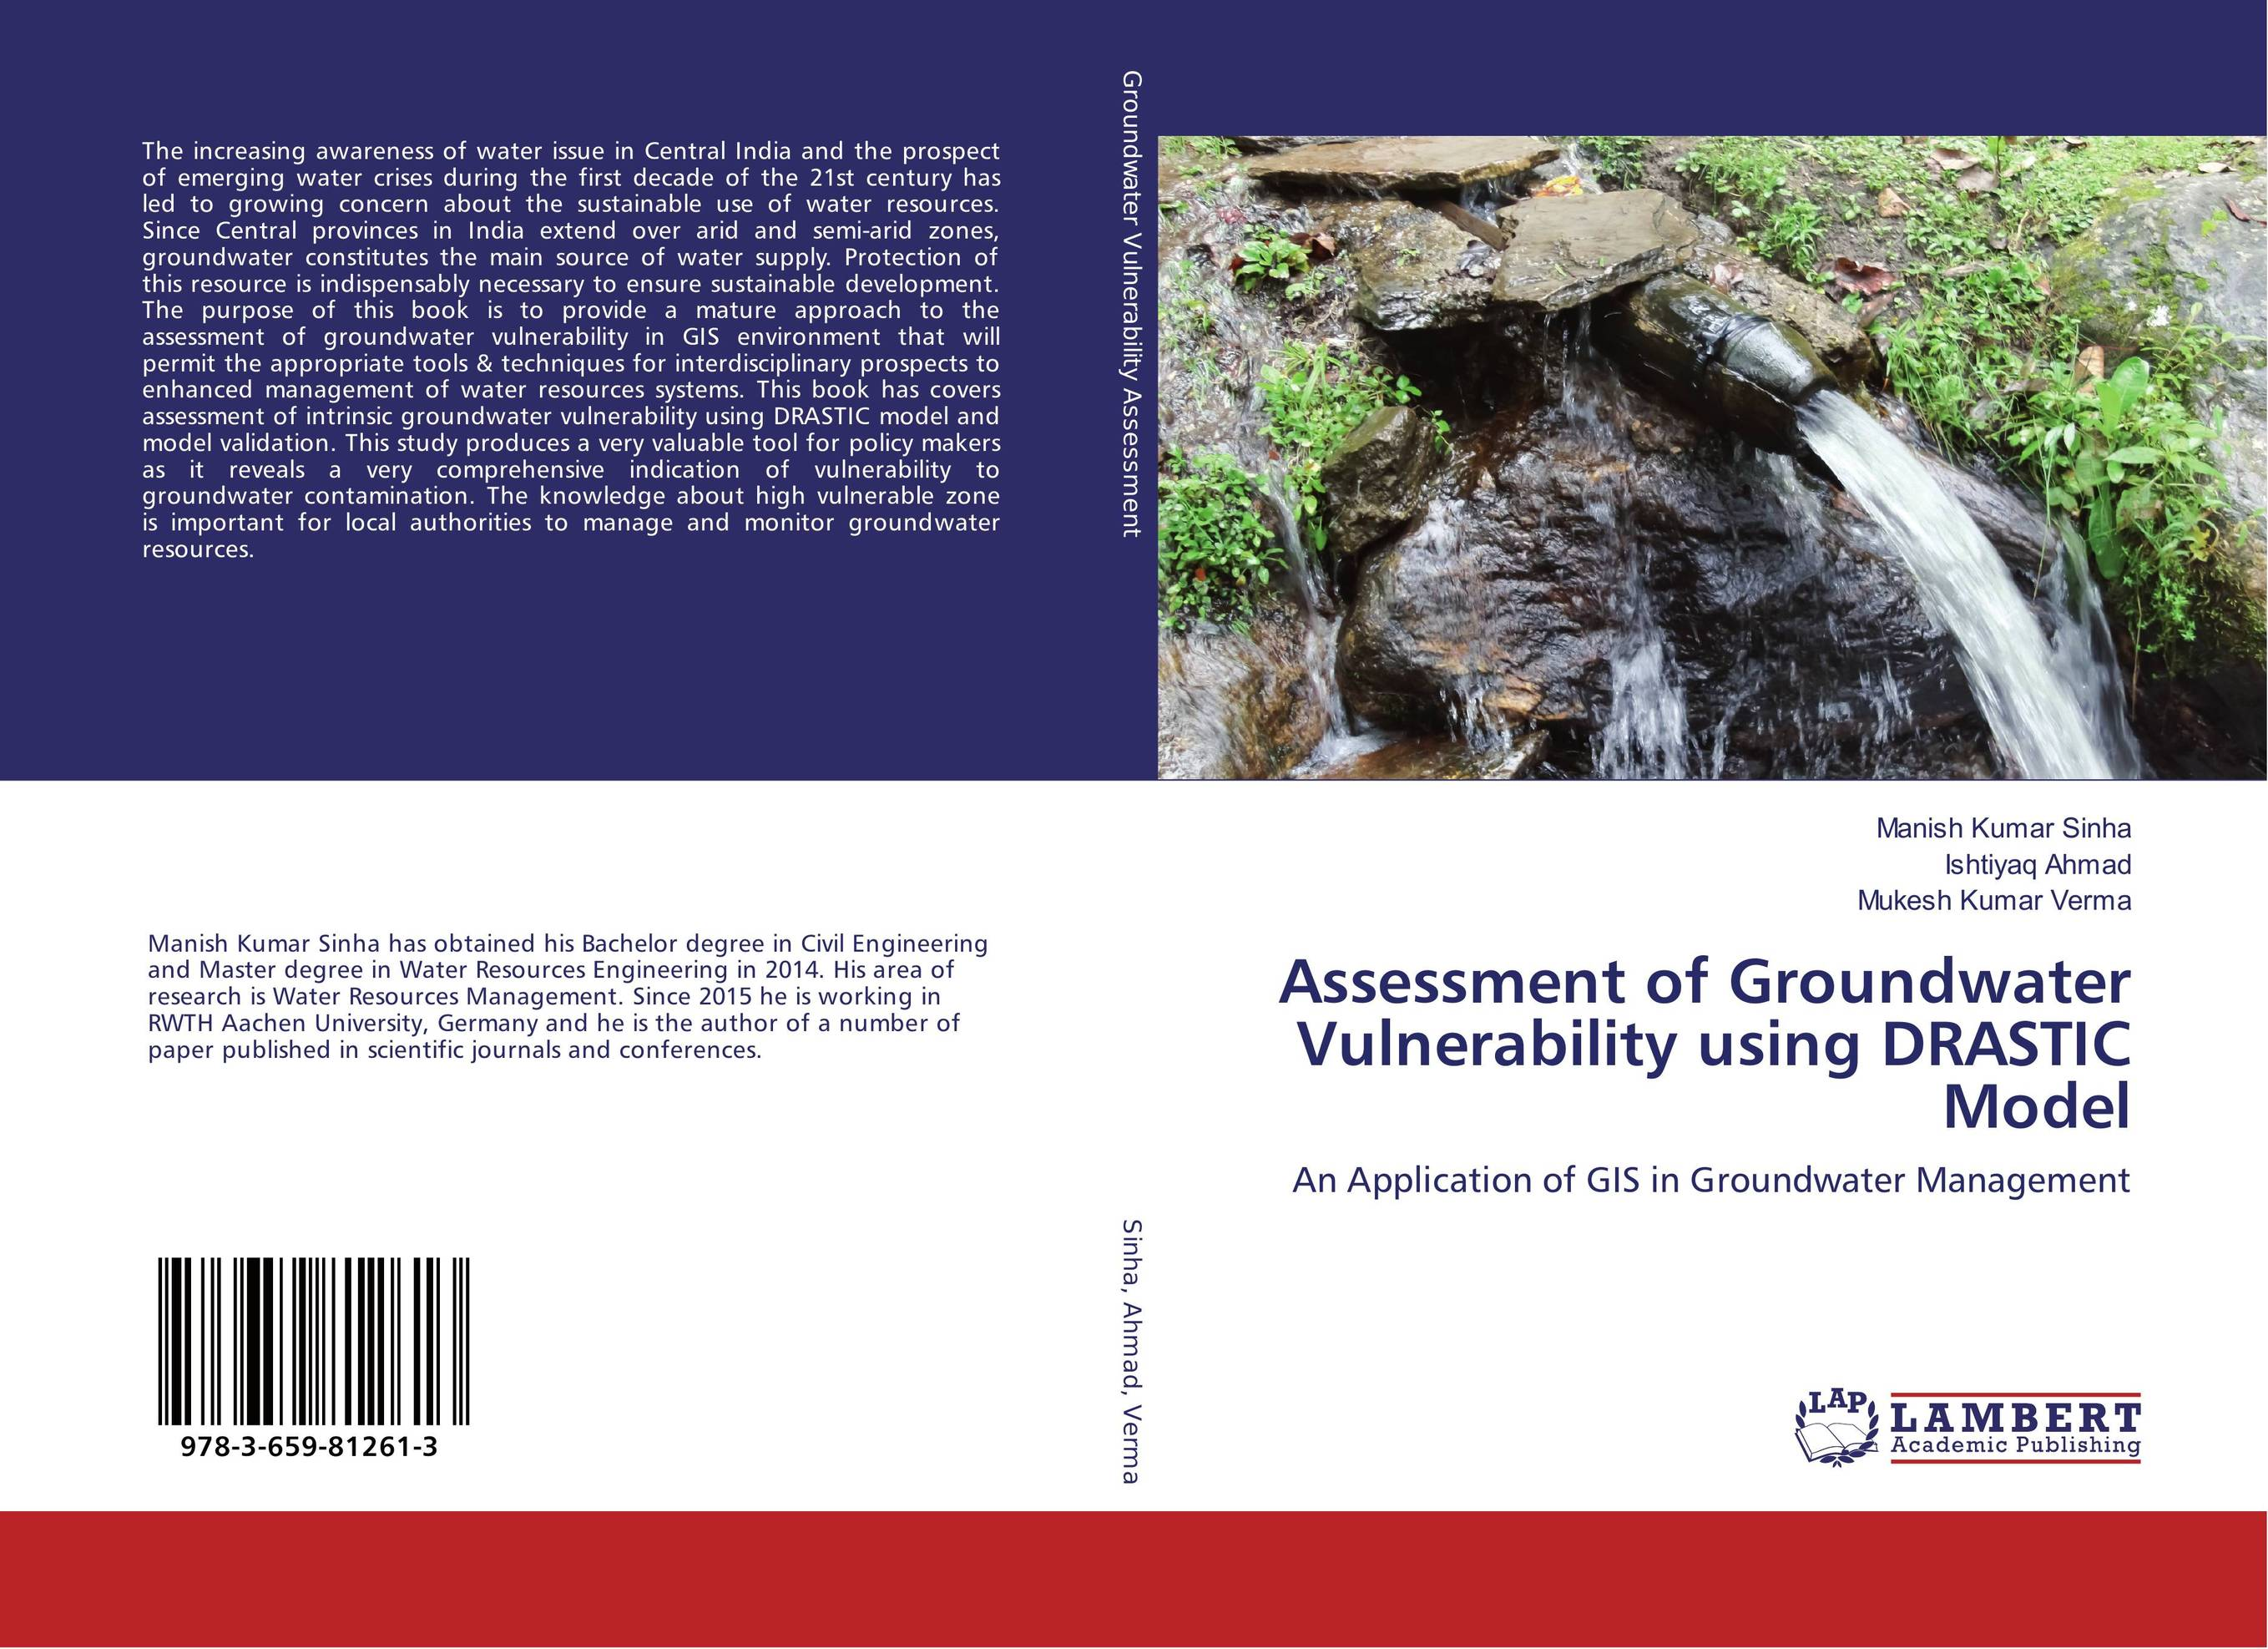 Assessment of Groundwater Vulnerability using DRASTIC Model survival of local knowledge about management of natural resources